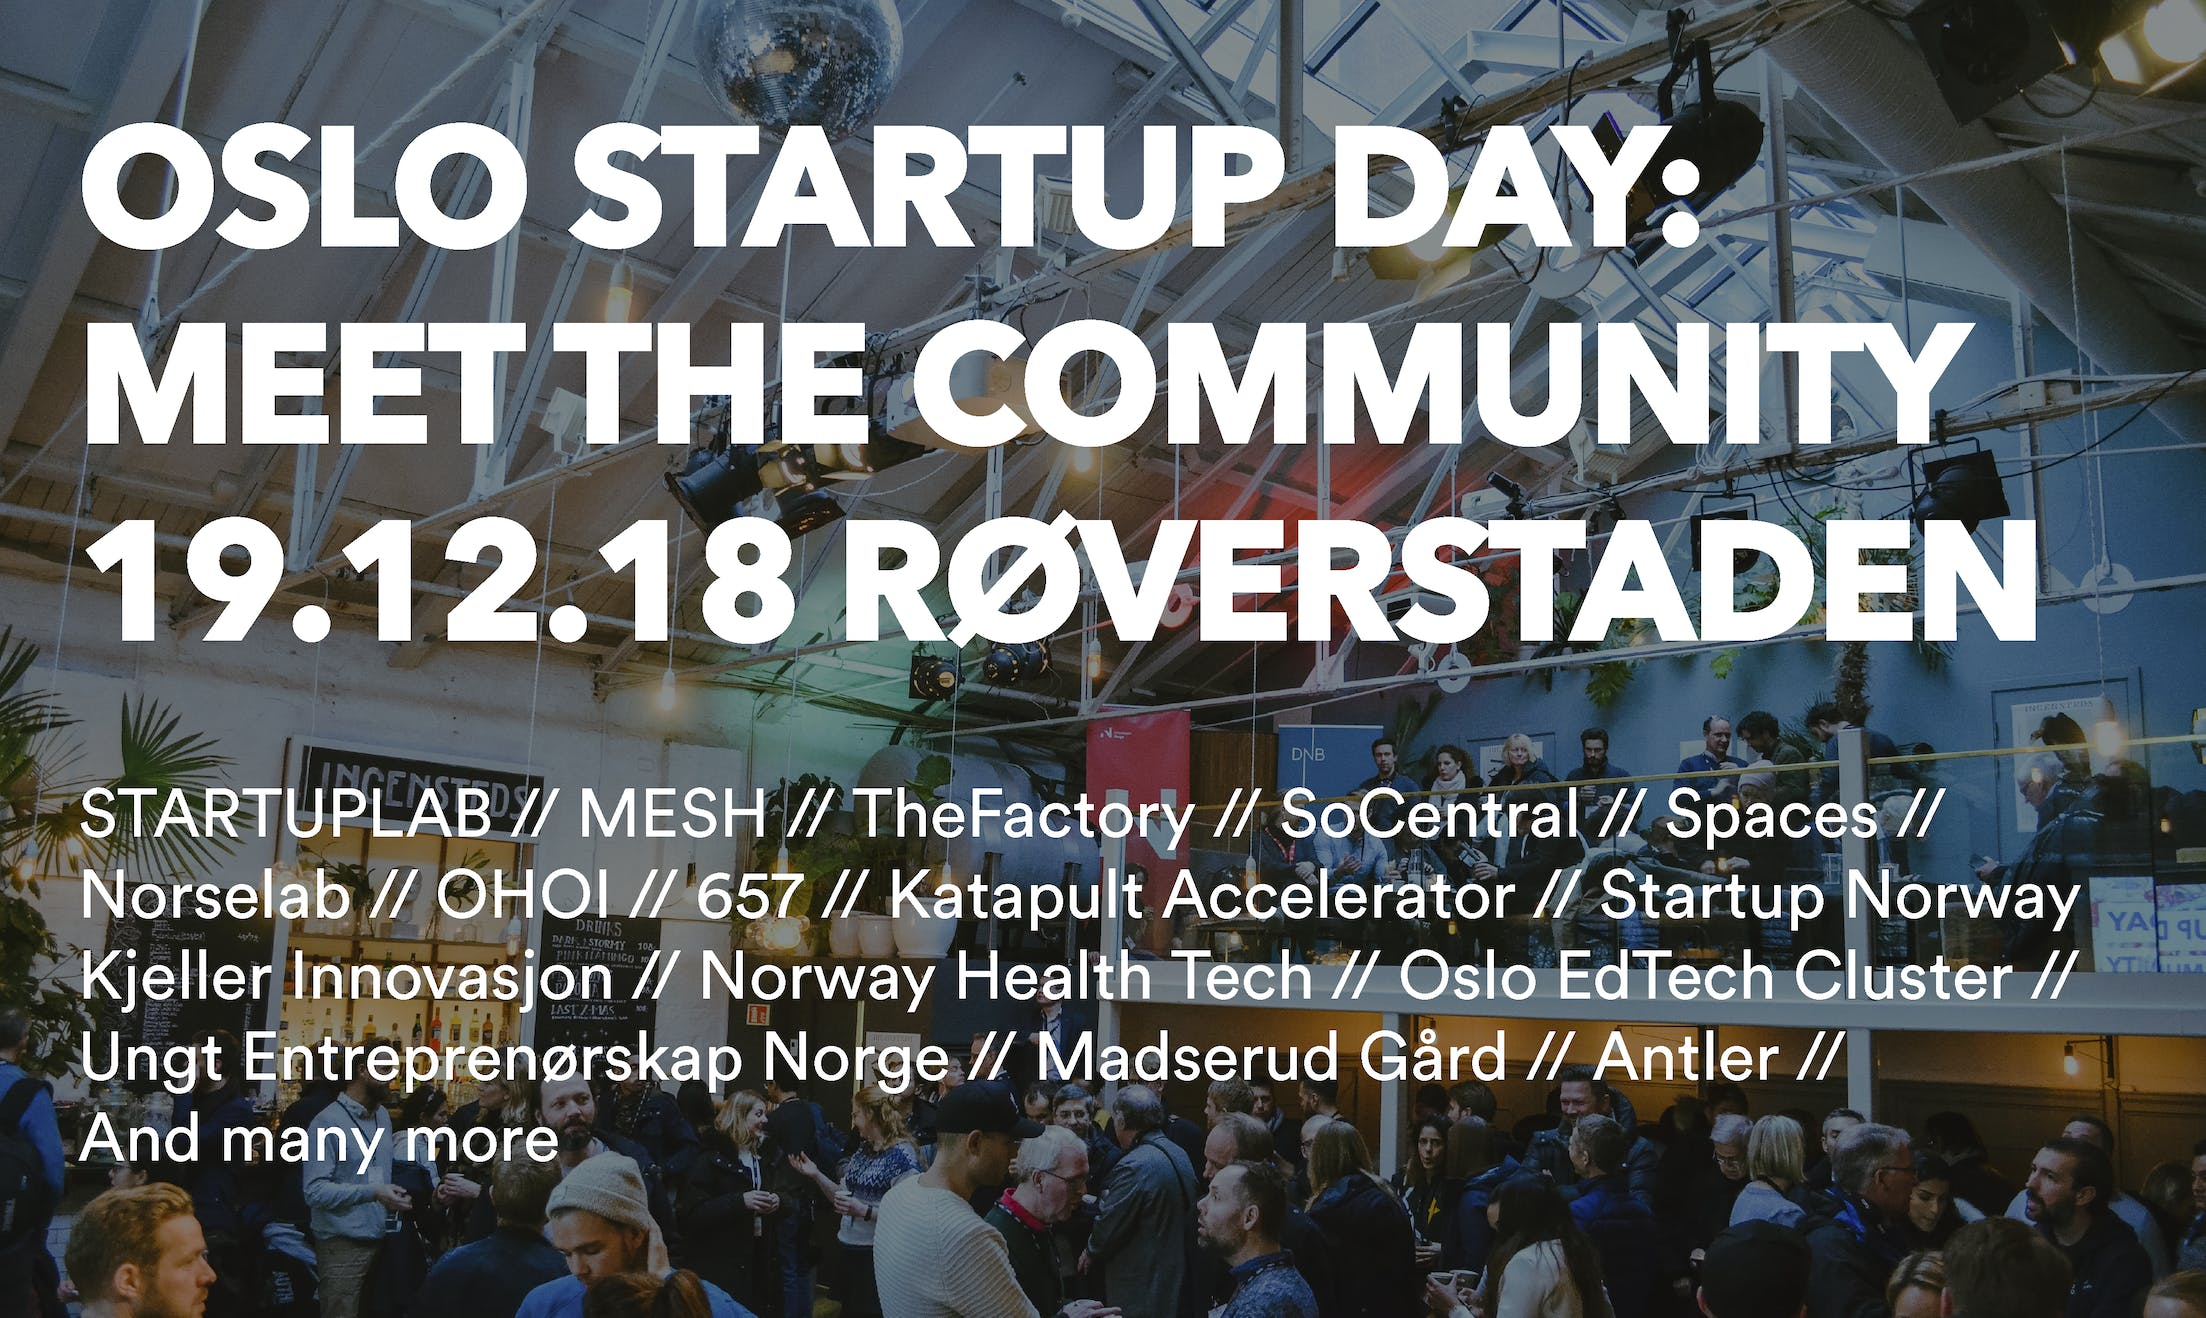 Oslo Startup Day: Meet the Community